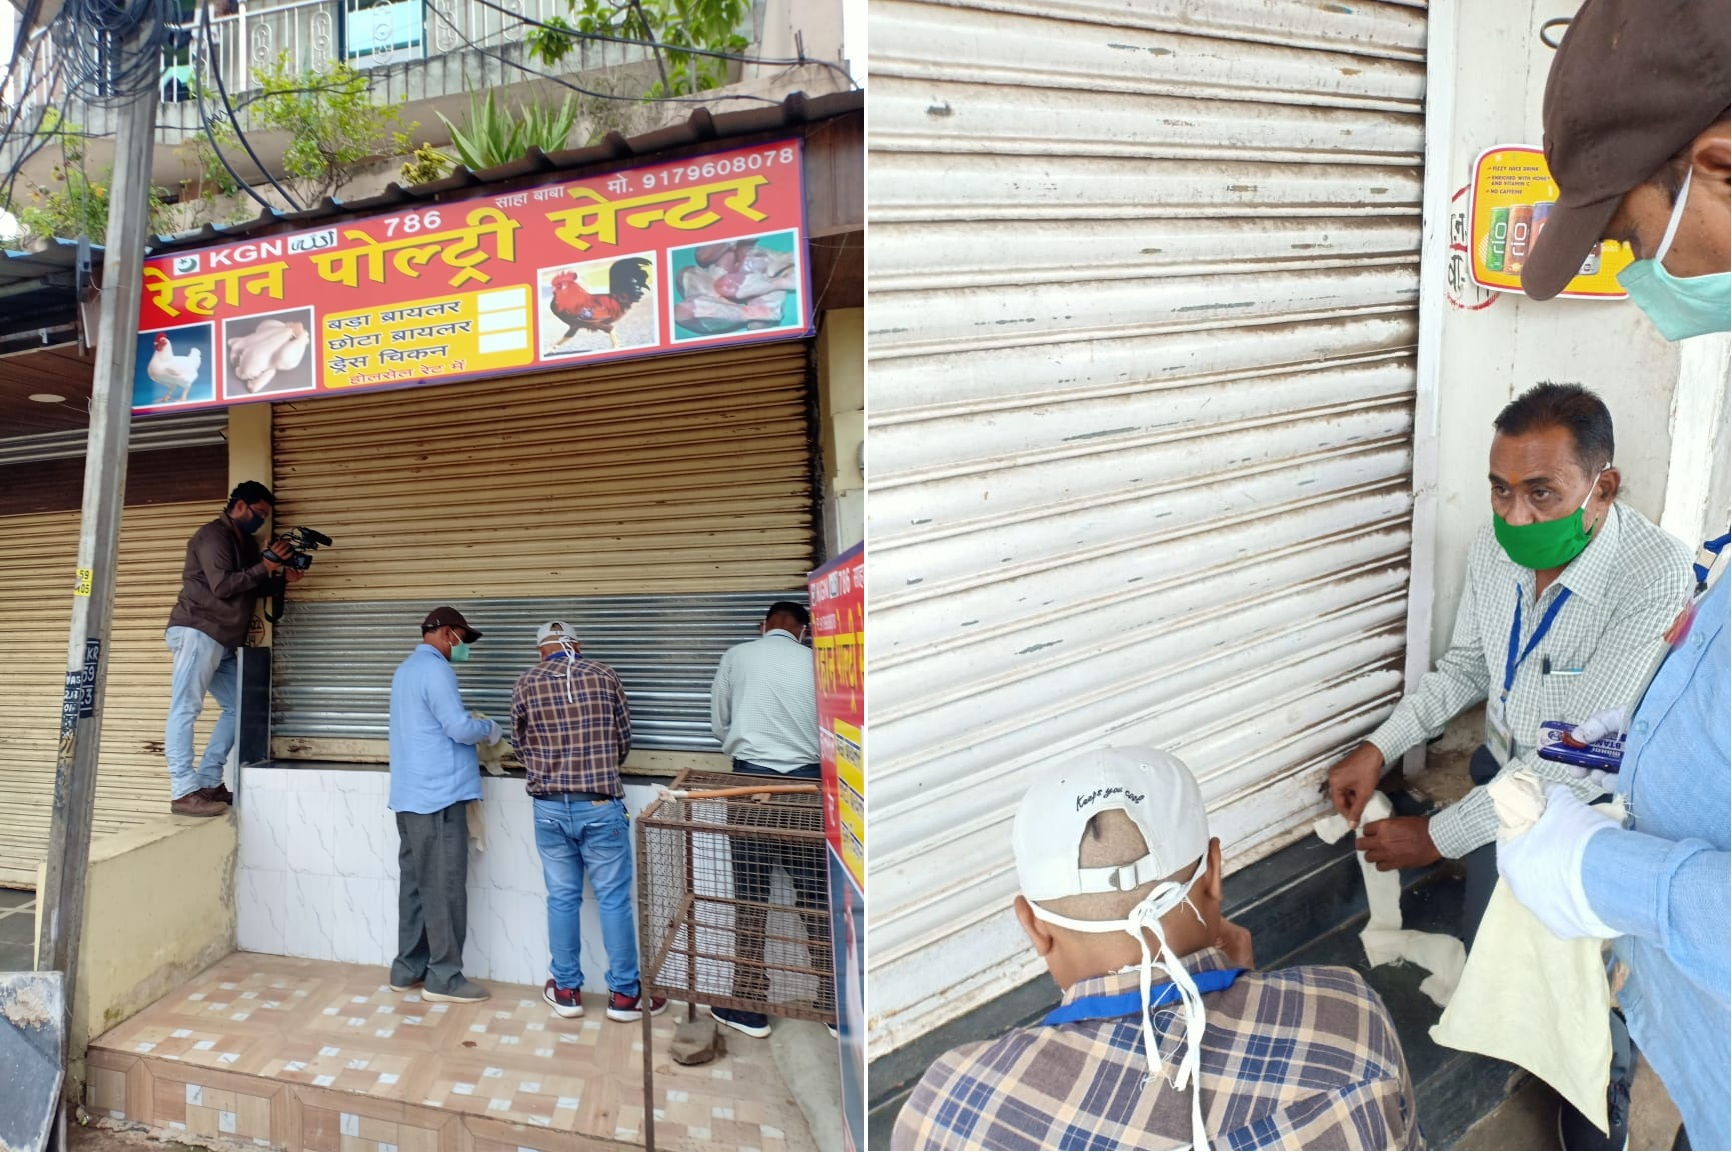 Municipal corporation breaks lockdown and sealed shops to keep shops running